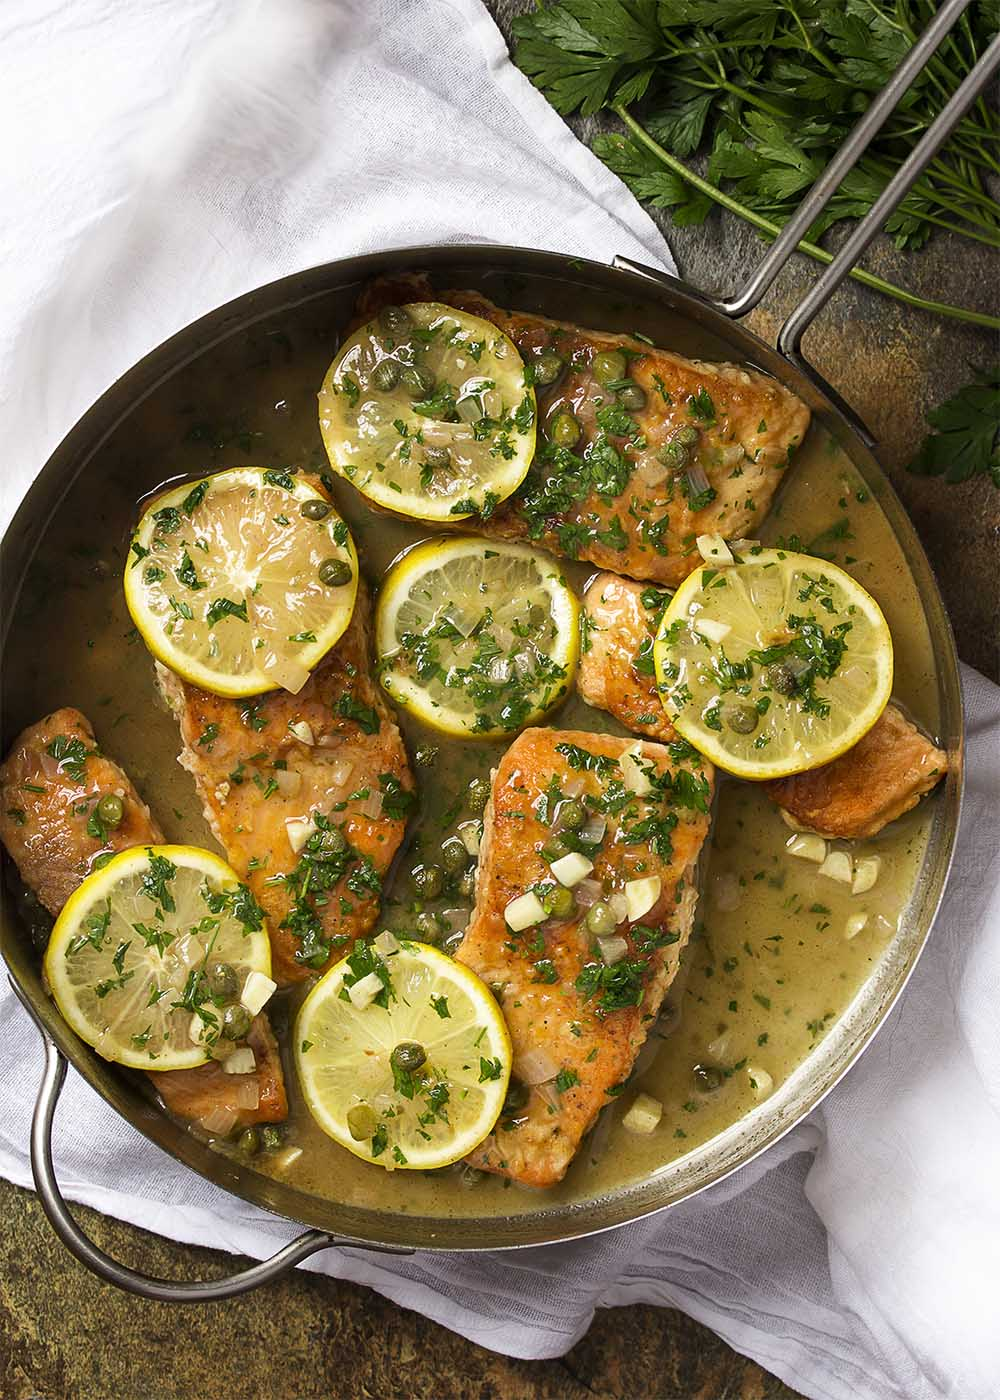 A skillet full of salmon piccata with a lemon, garlic, parsley, and caper sauce and lemon slices on top.